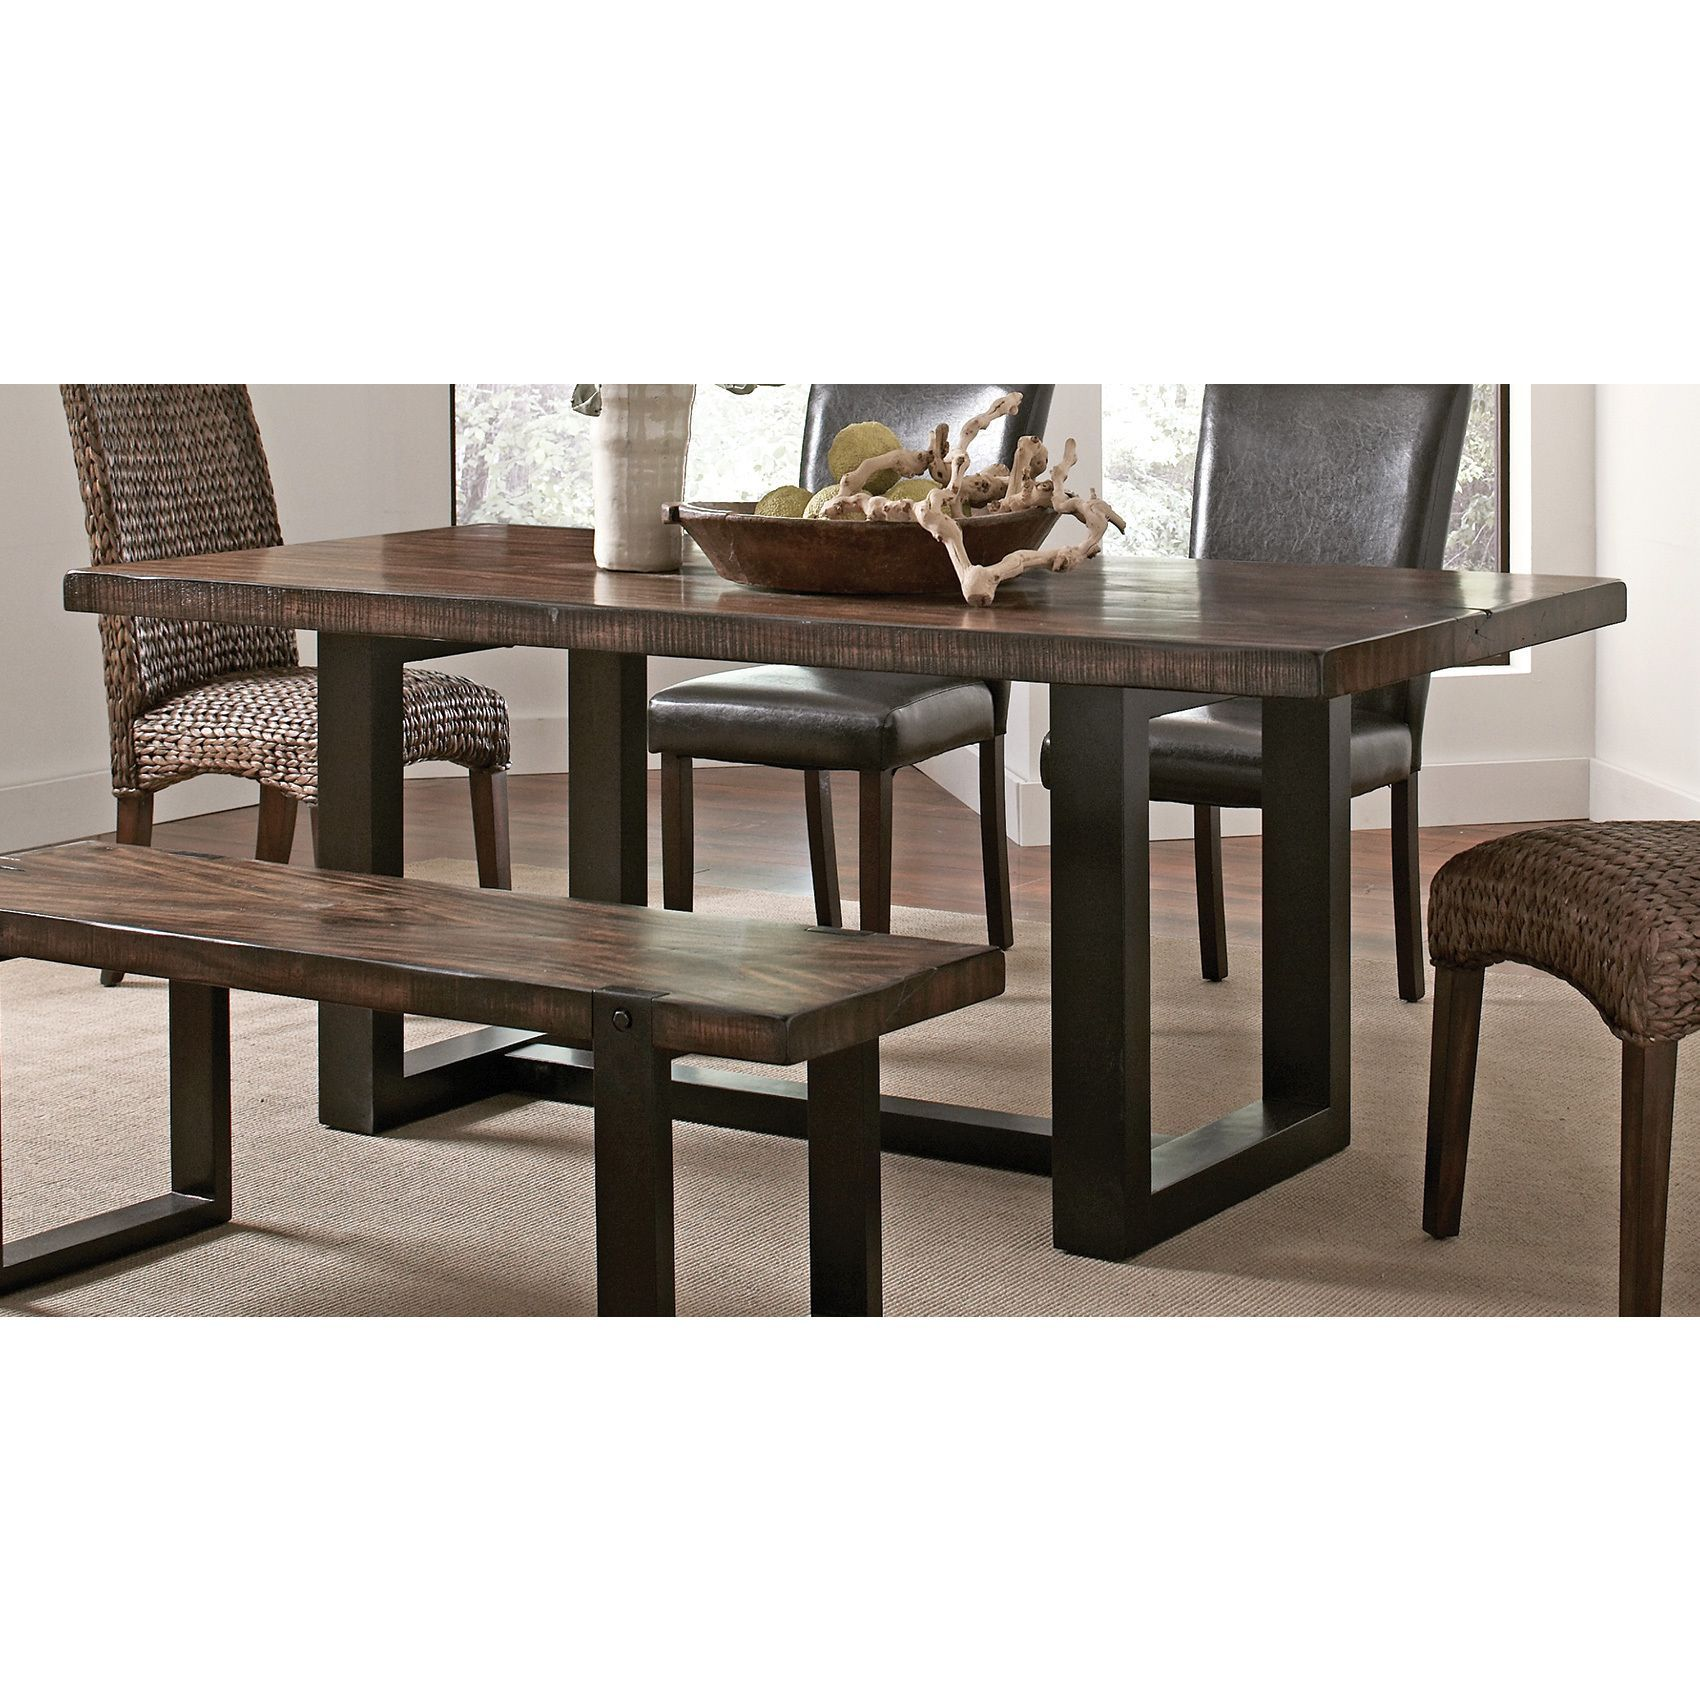 Coaster pany Black Dining Table Dining Table